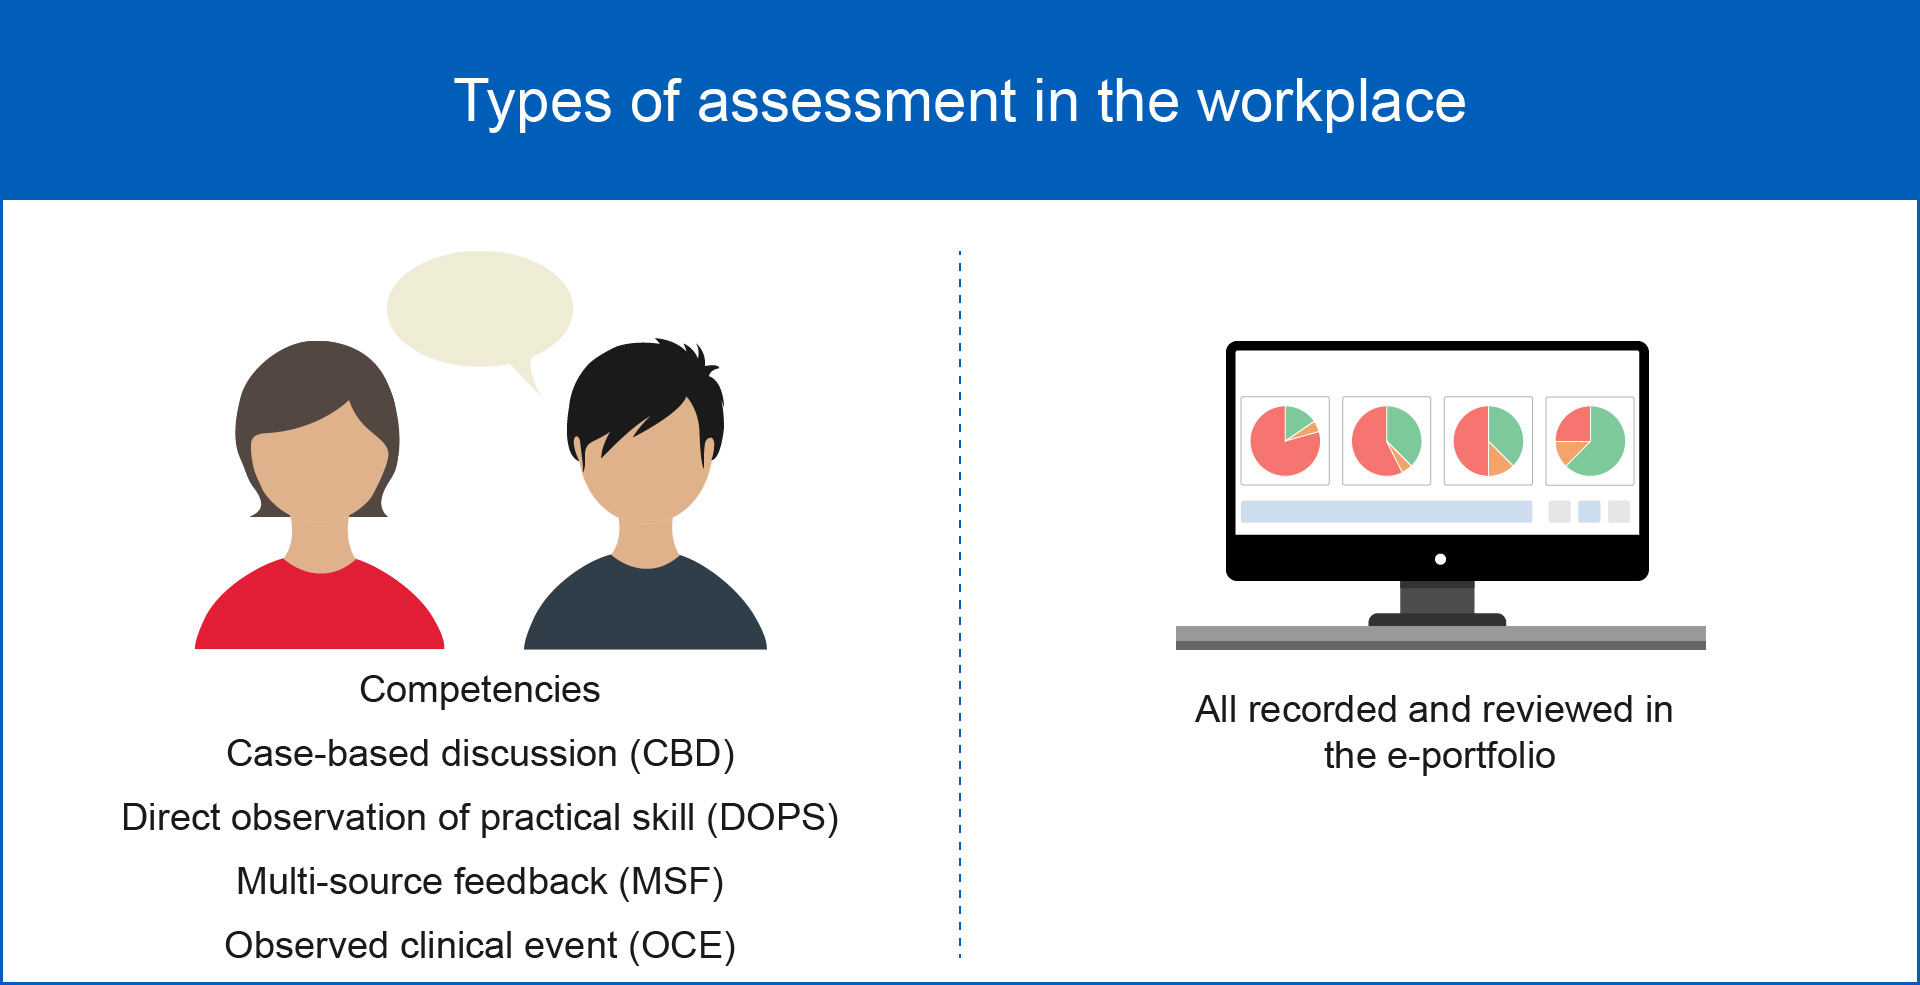 Graphic showing the types of assessment used in the workplace